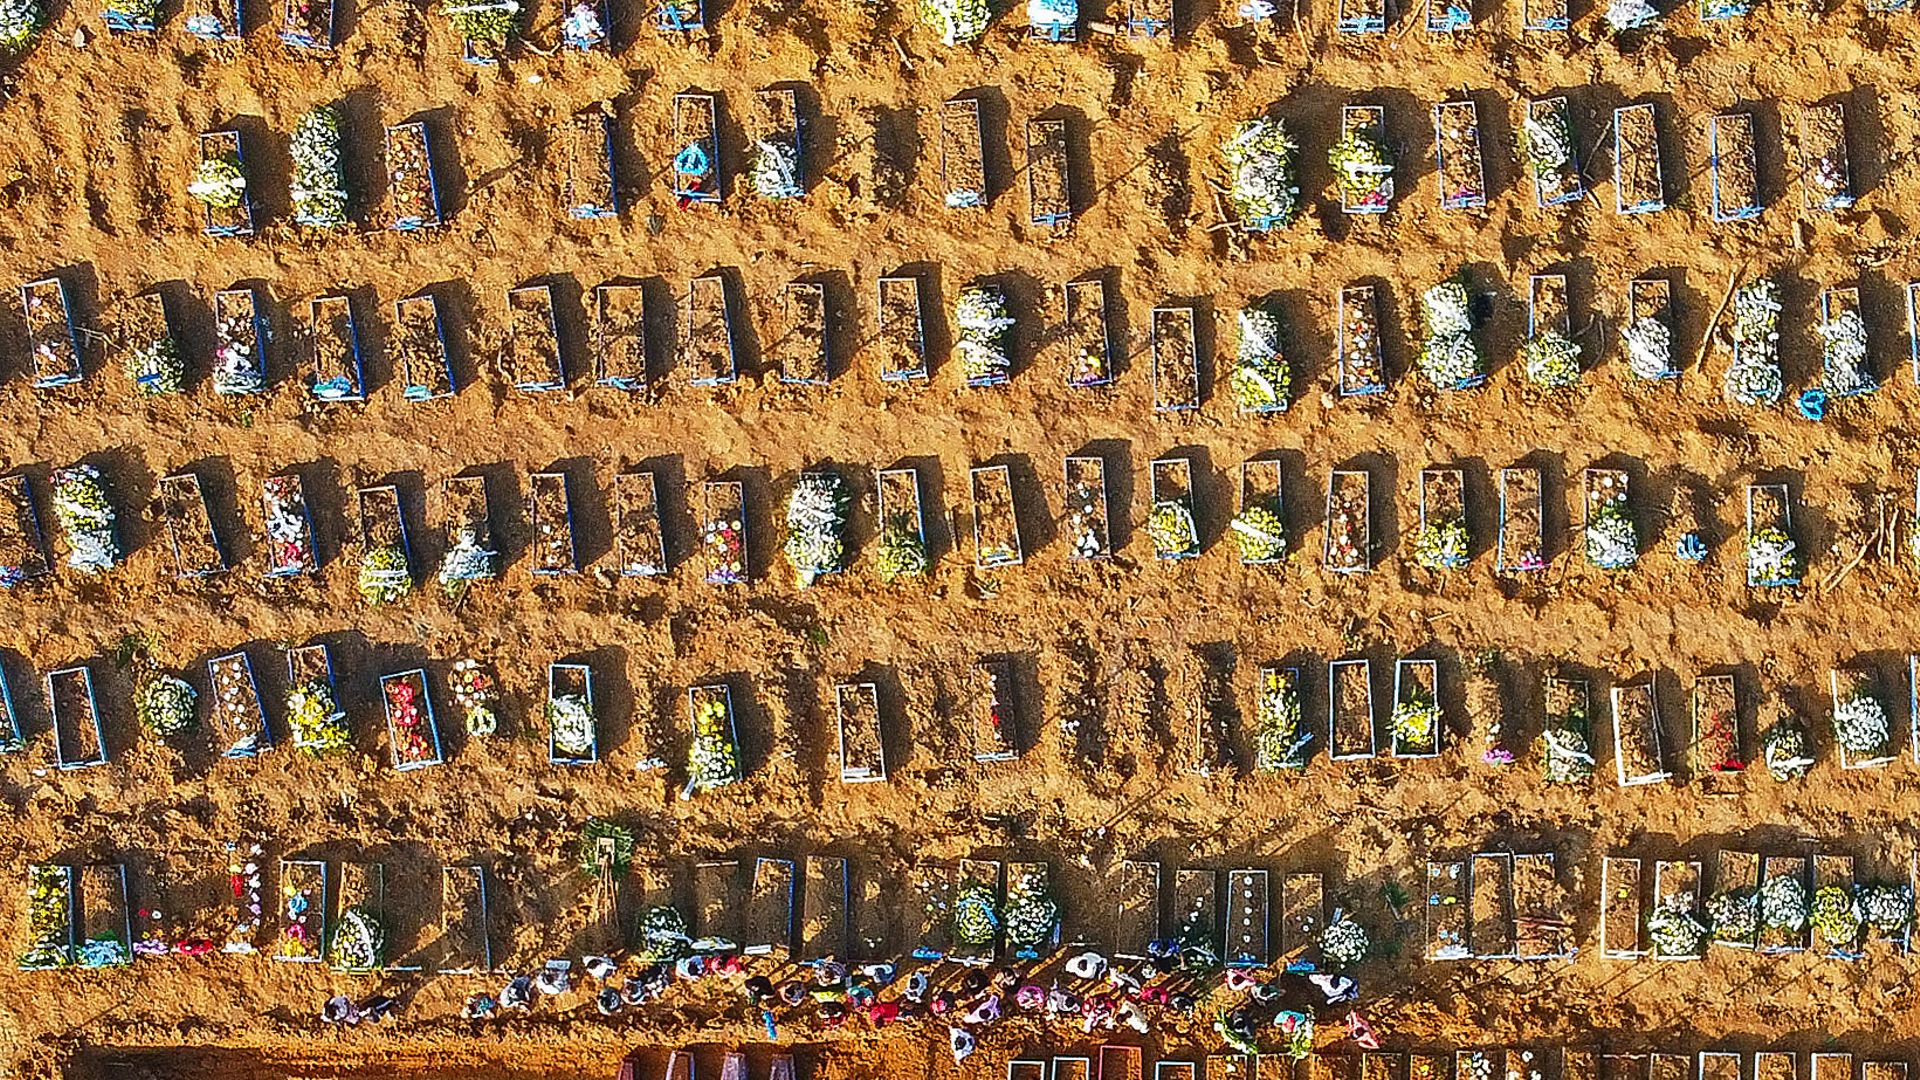 An aerial view of coffins at a mass burial in Parque Taruma cemetery, Manaus, Brazil. Graves are being dug at a new area of the cemetery for Covid deaths. - Credit: AFP via Getty Images